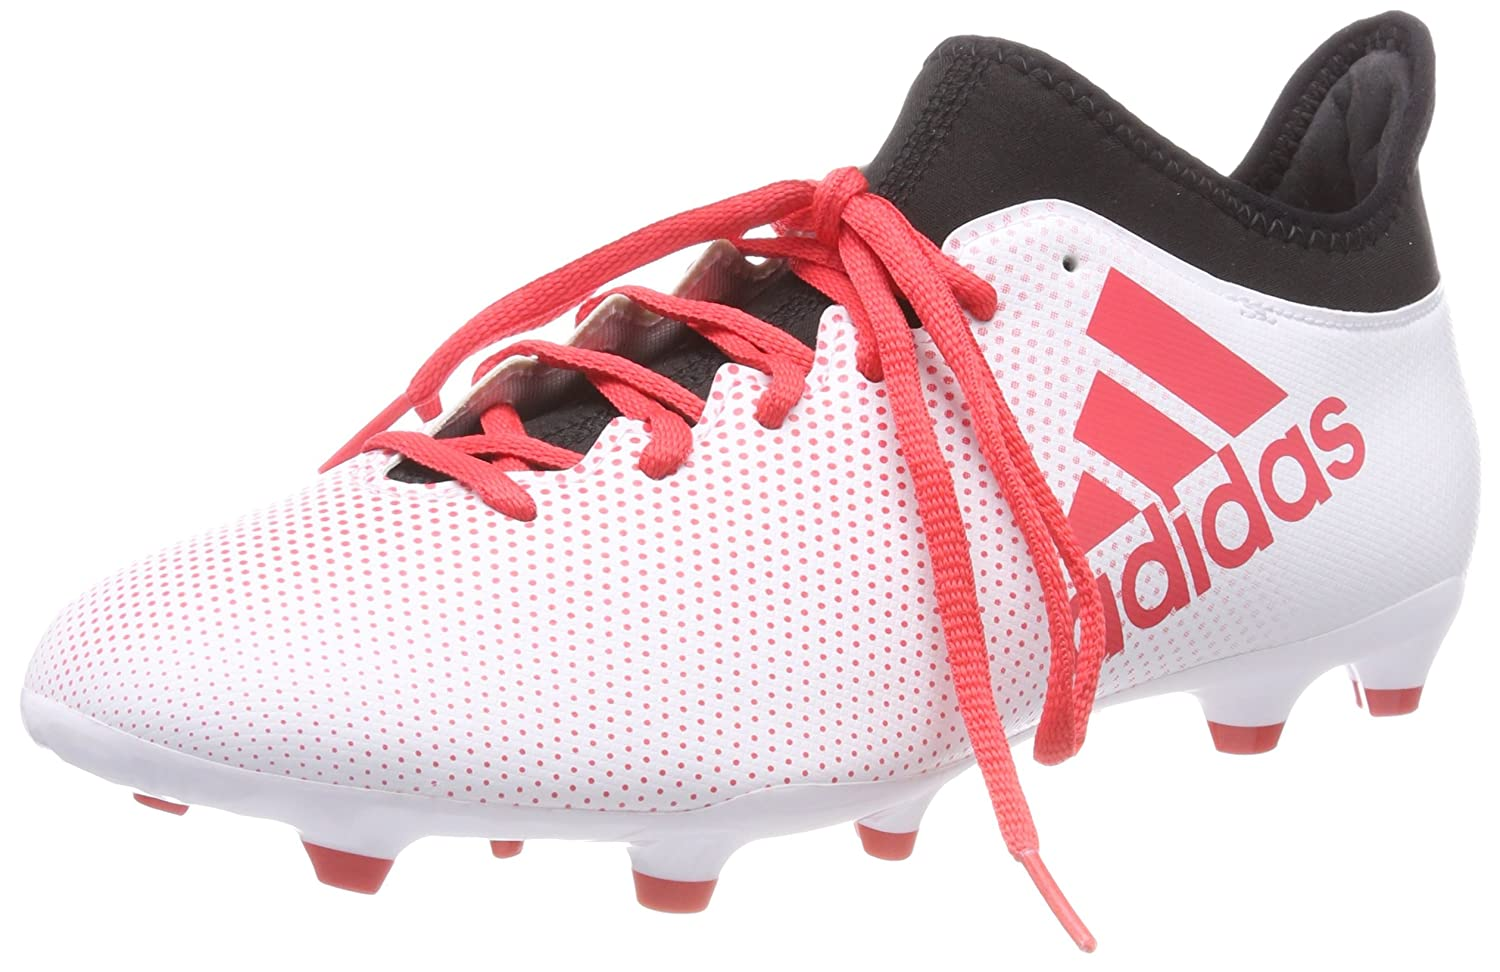 MultiCouleure (Ftwwht Reacor Cnoir Cp9192) adidas X 17.3 FG, Chaussures de Football Homme 42 EU